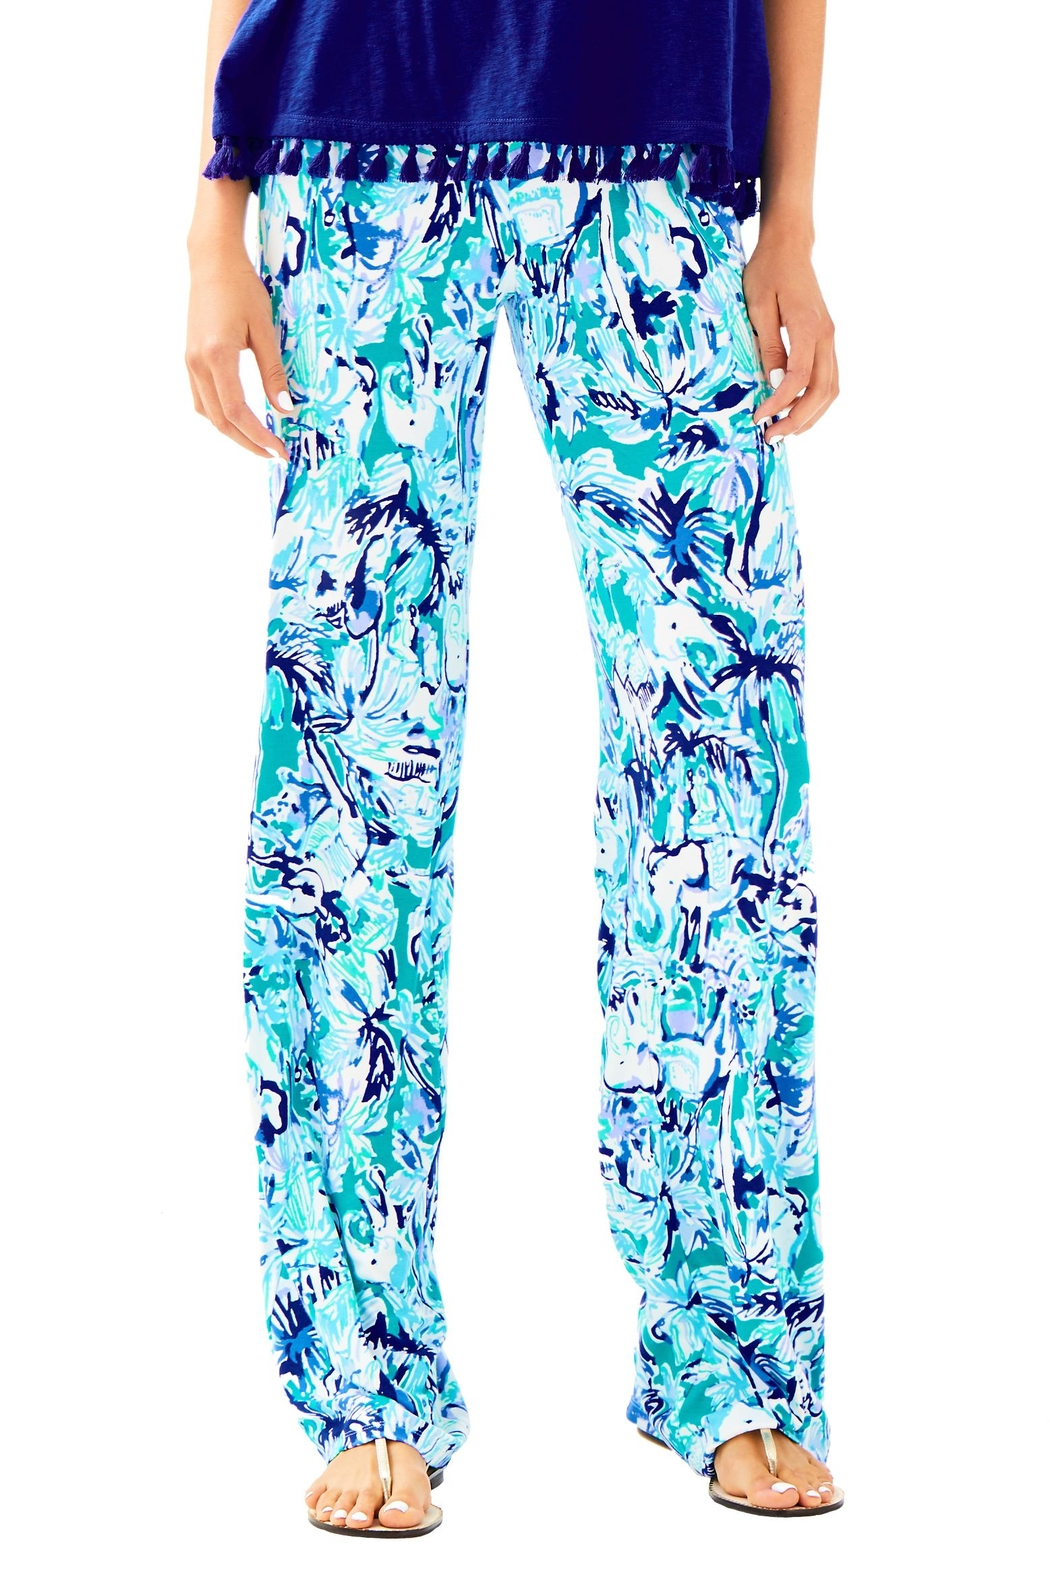 Lilly Pulitzer Lorena Palazzo Pant - Front Cropped Image